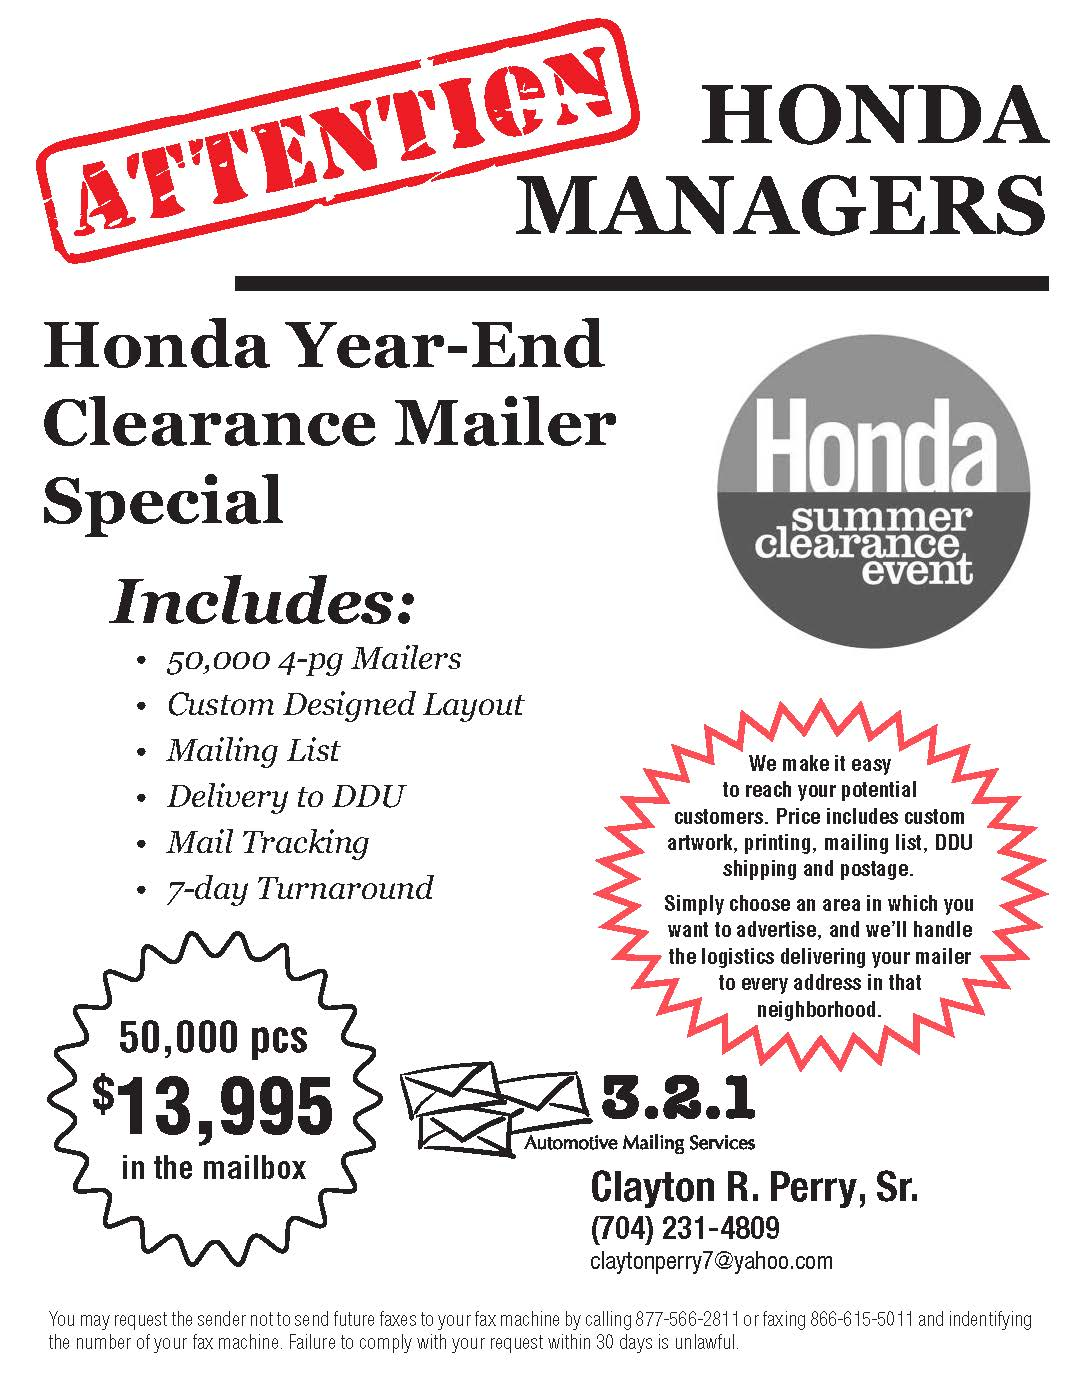 Honda Clearance Mailers